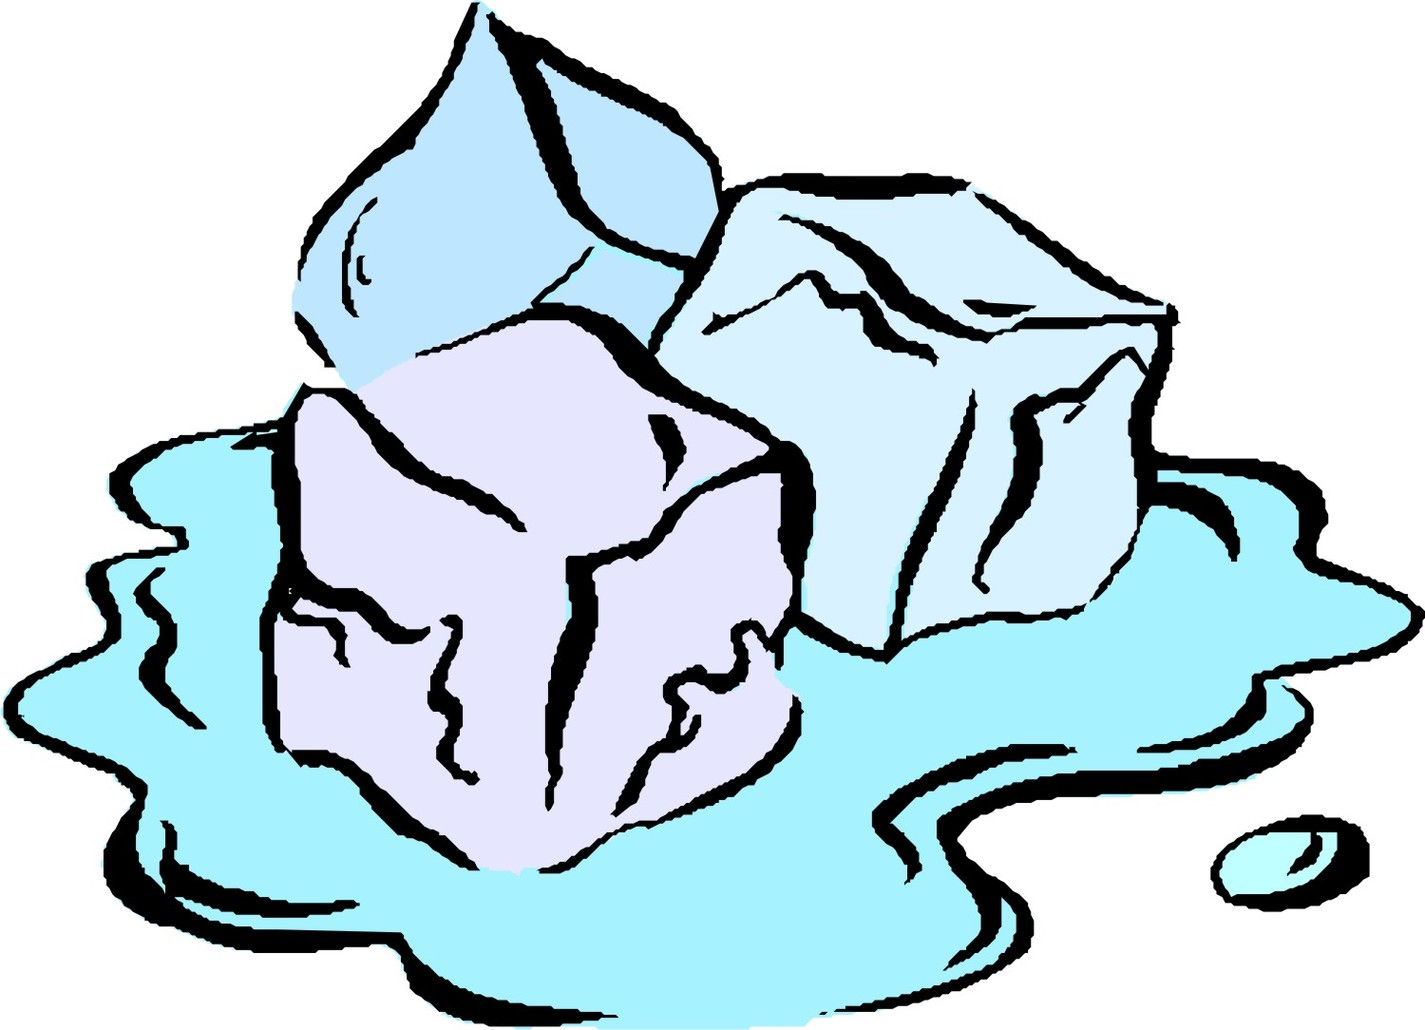 Ice Cubes clipart #12, Download drawings